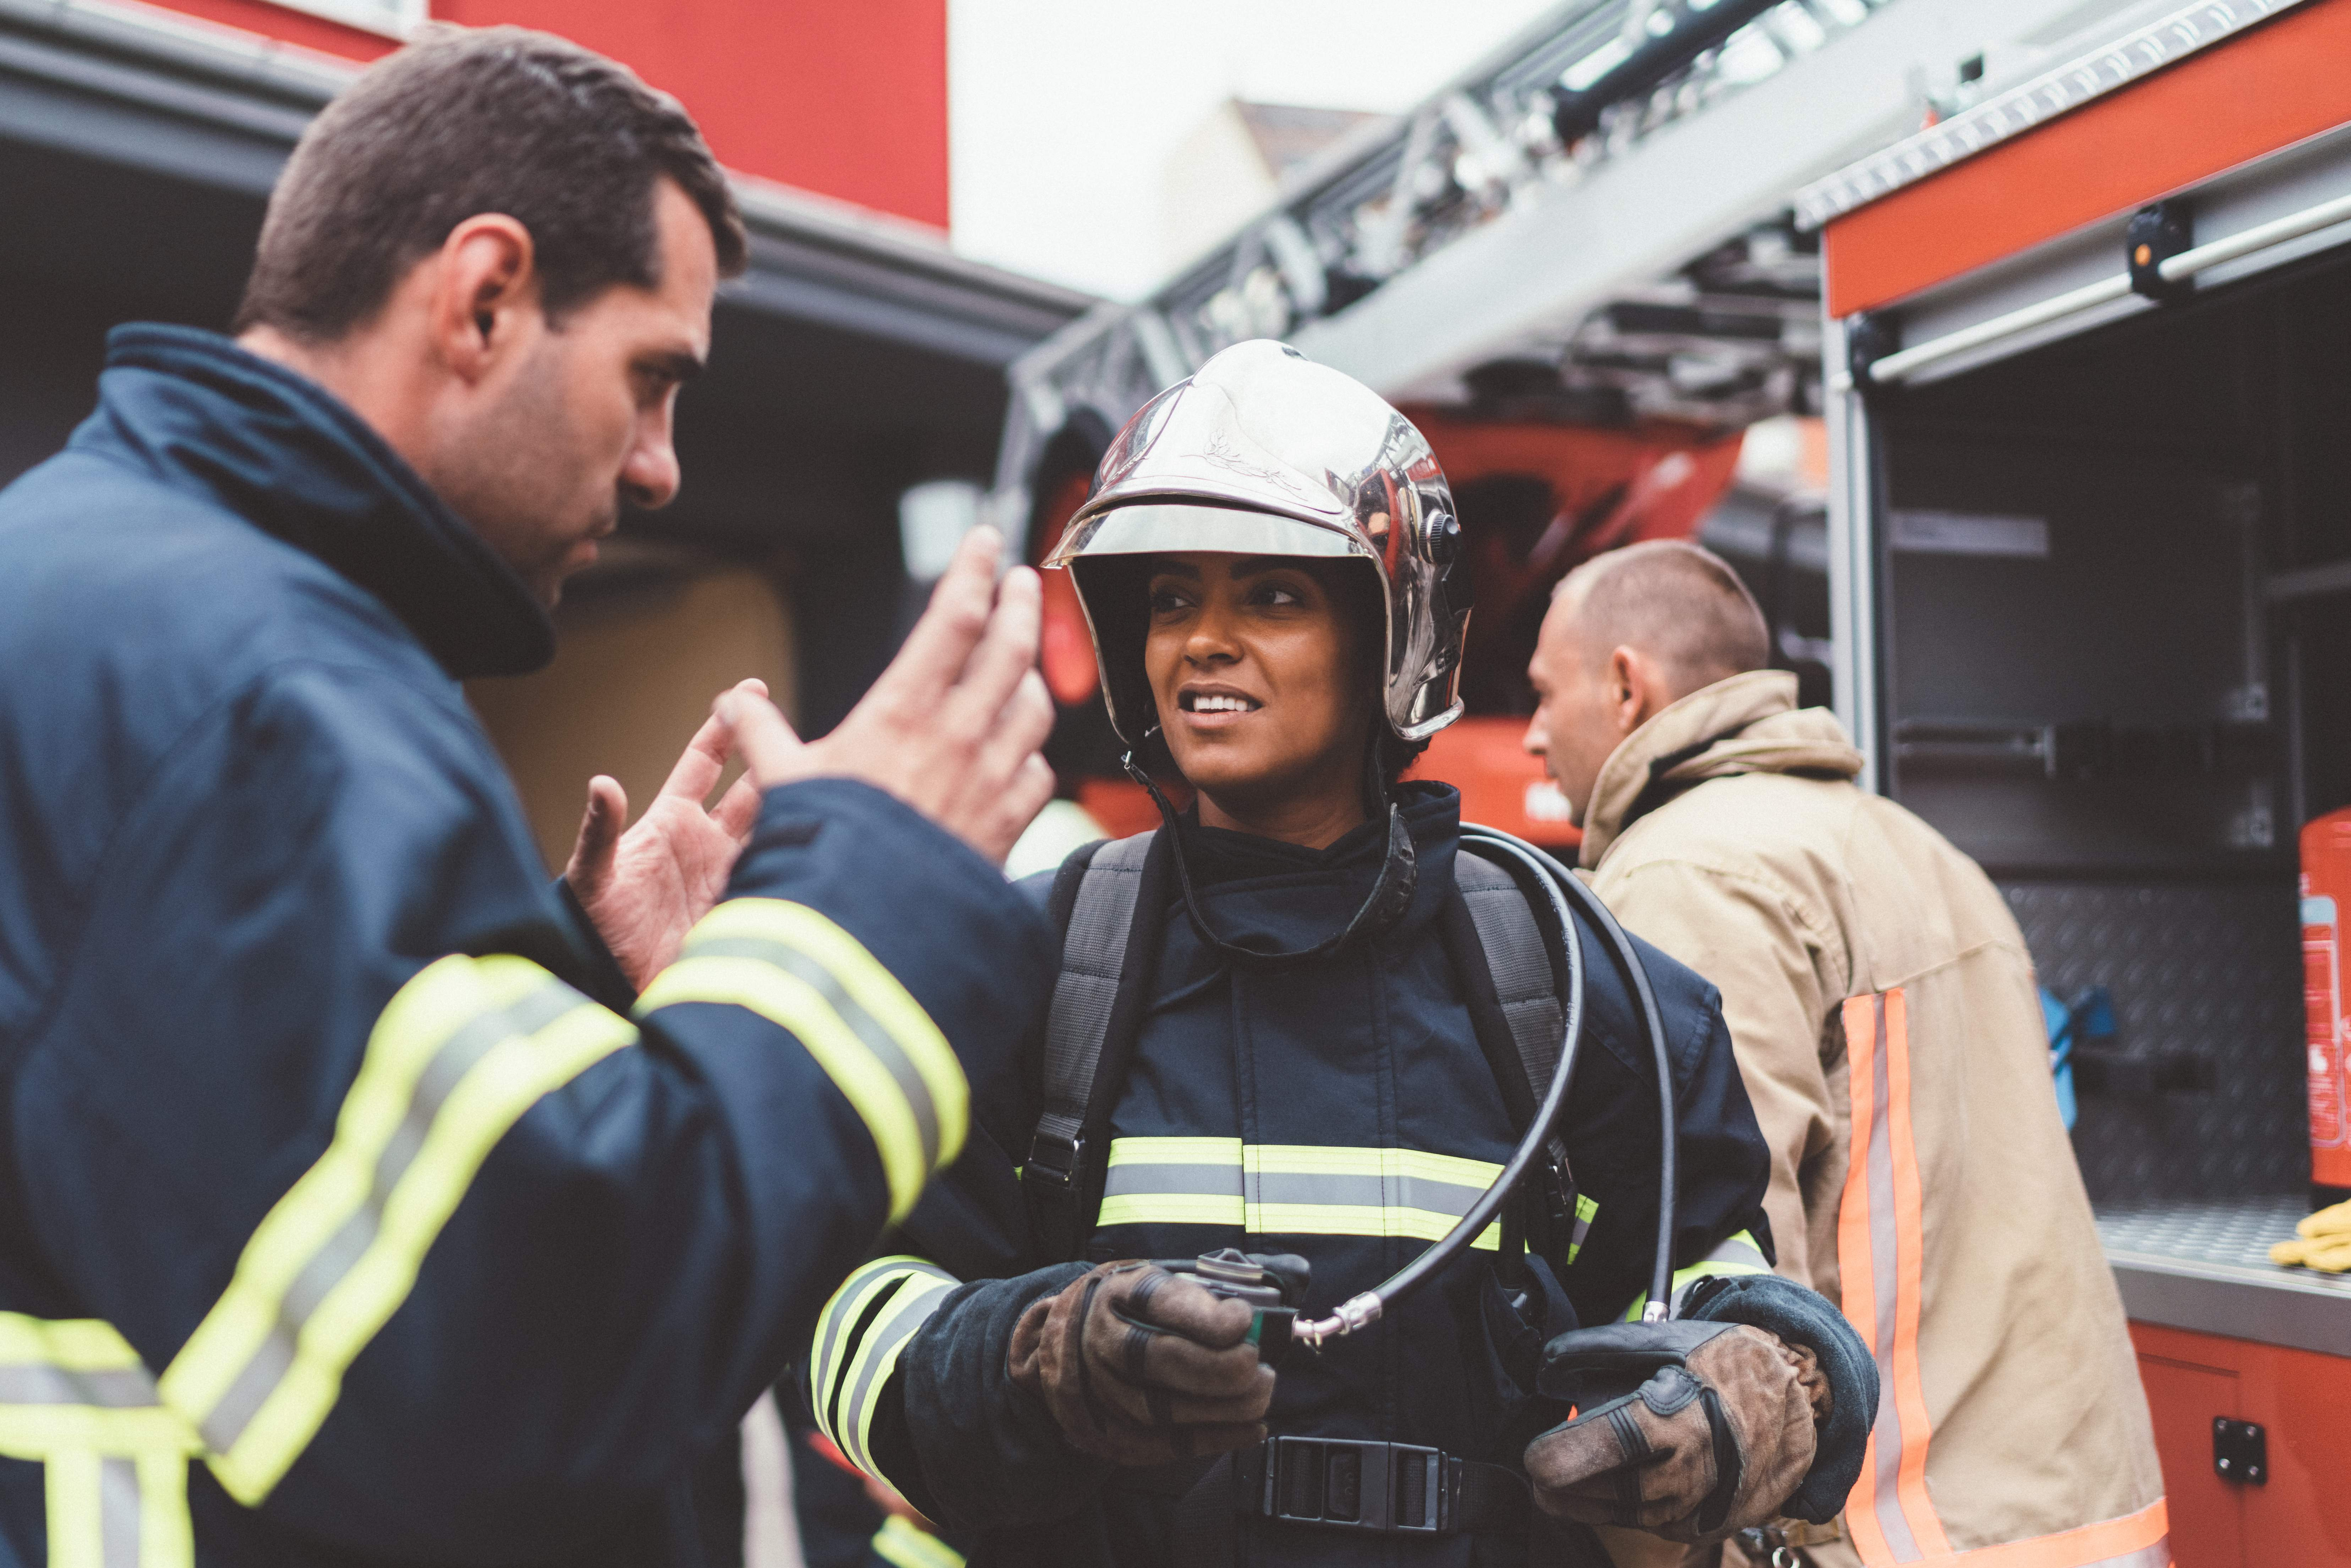 Firefighters ready for rescue